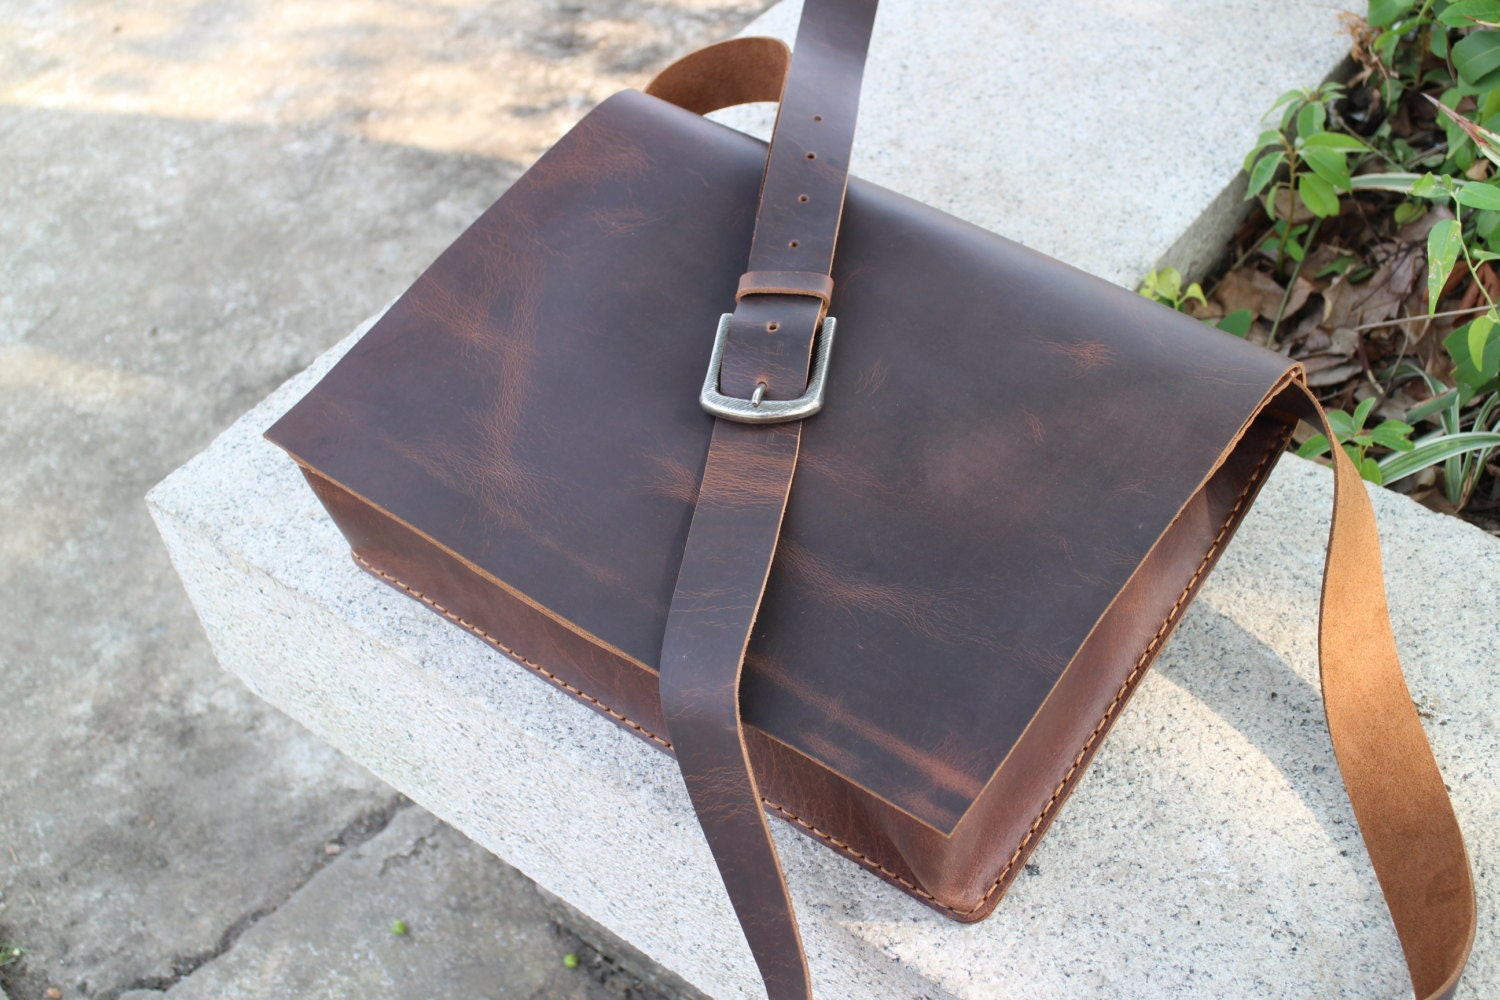 leather messenger bag,mens leather messenger bag, laptop bag, Camera tool bag, Waxed thread, leather bag ,handmade,gift.